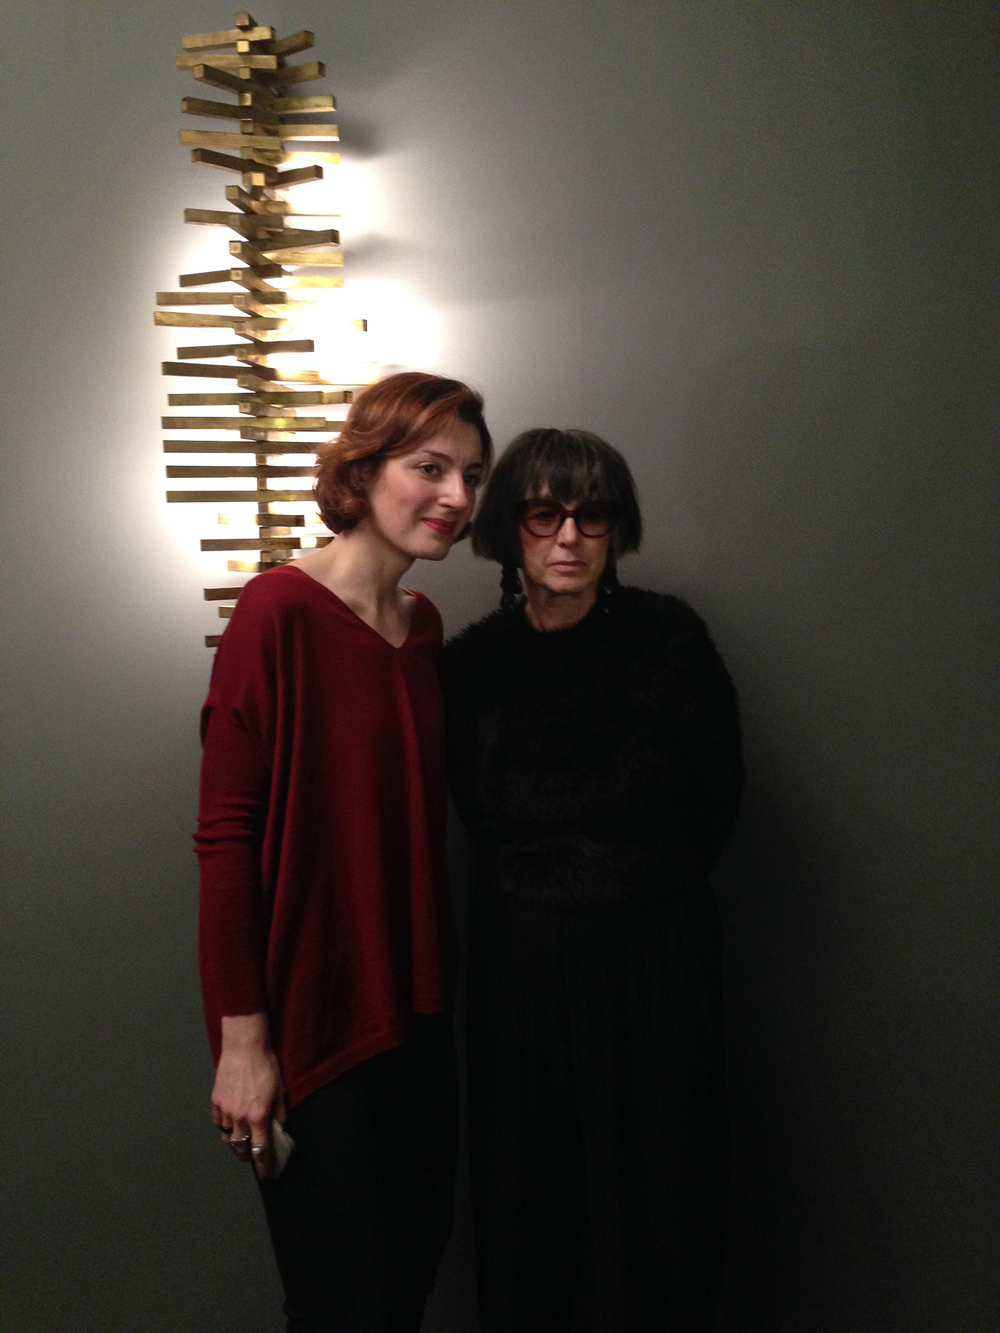 Gallery owner Rebecca Willer and Kety Kuparadze, Director of Galleria Vincenzo de Cotiis, Milan.